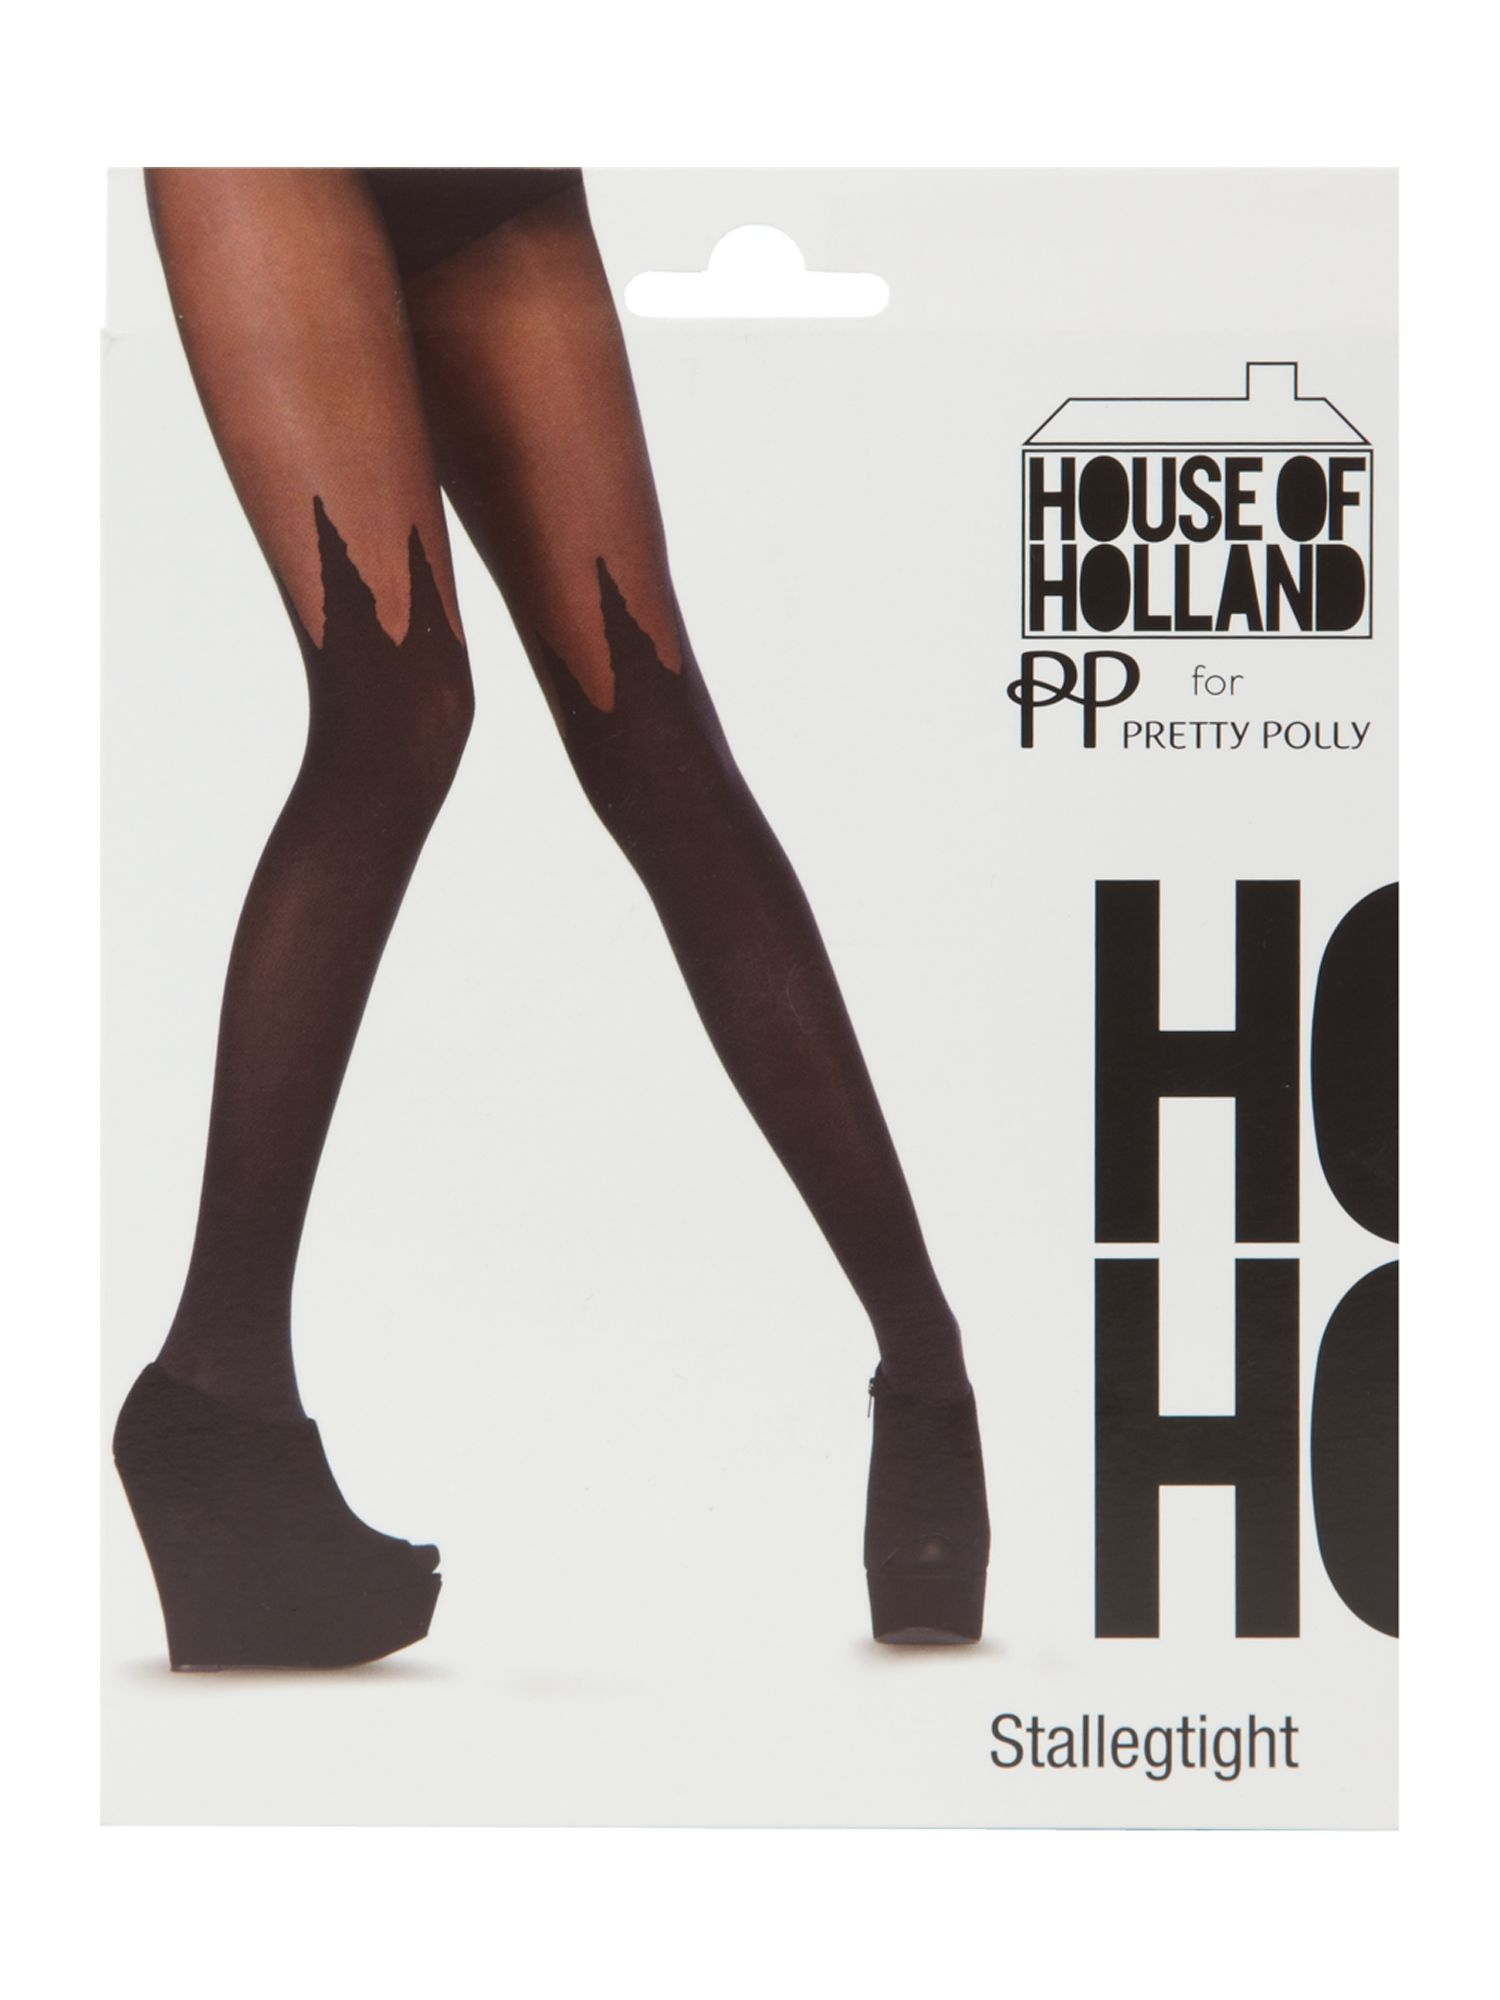 House of holland rspike mock hu